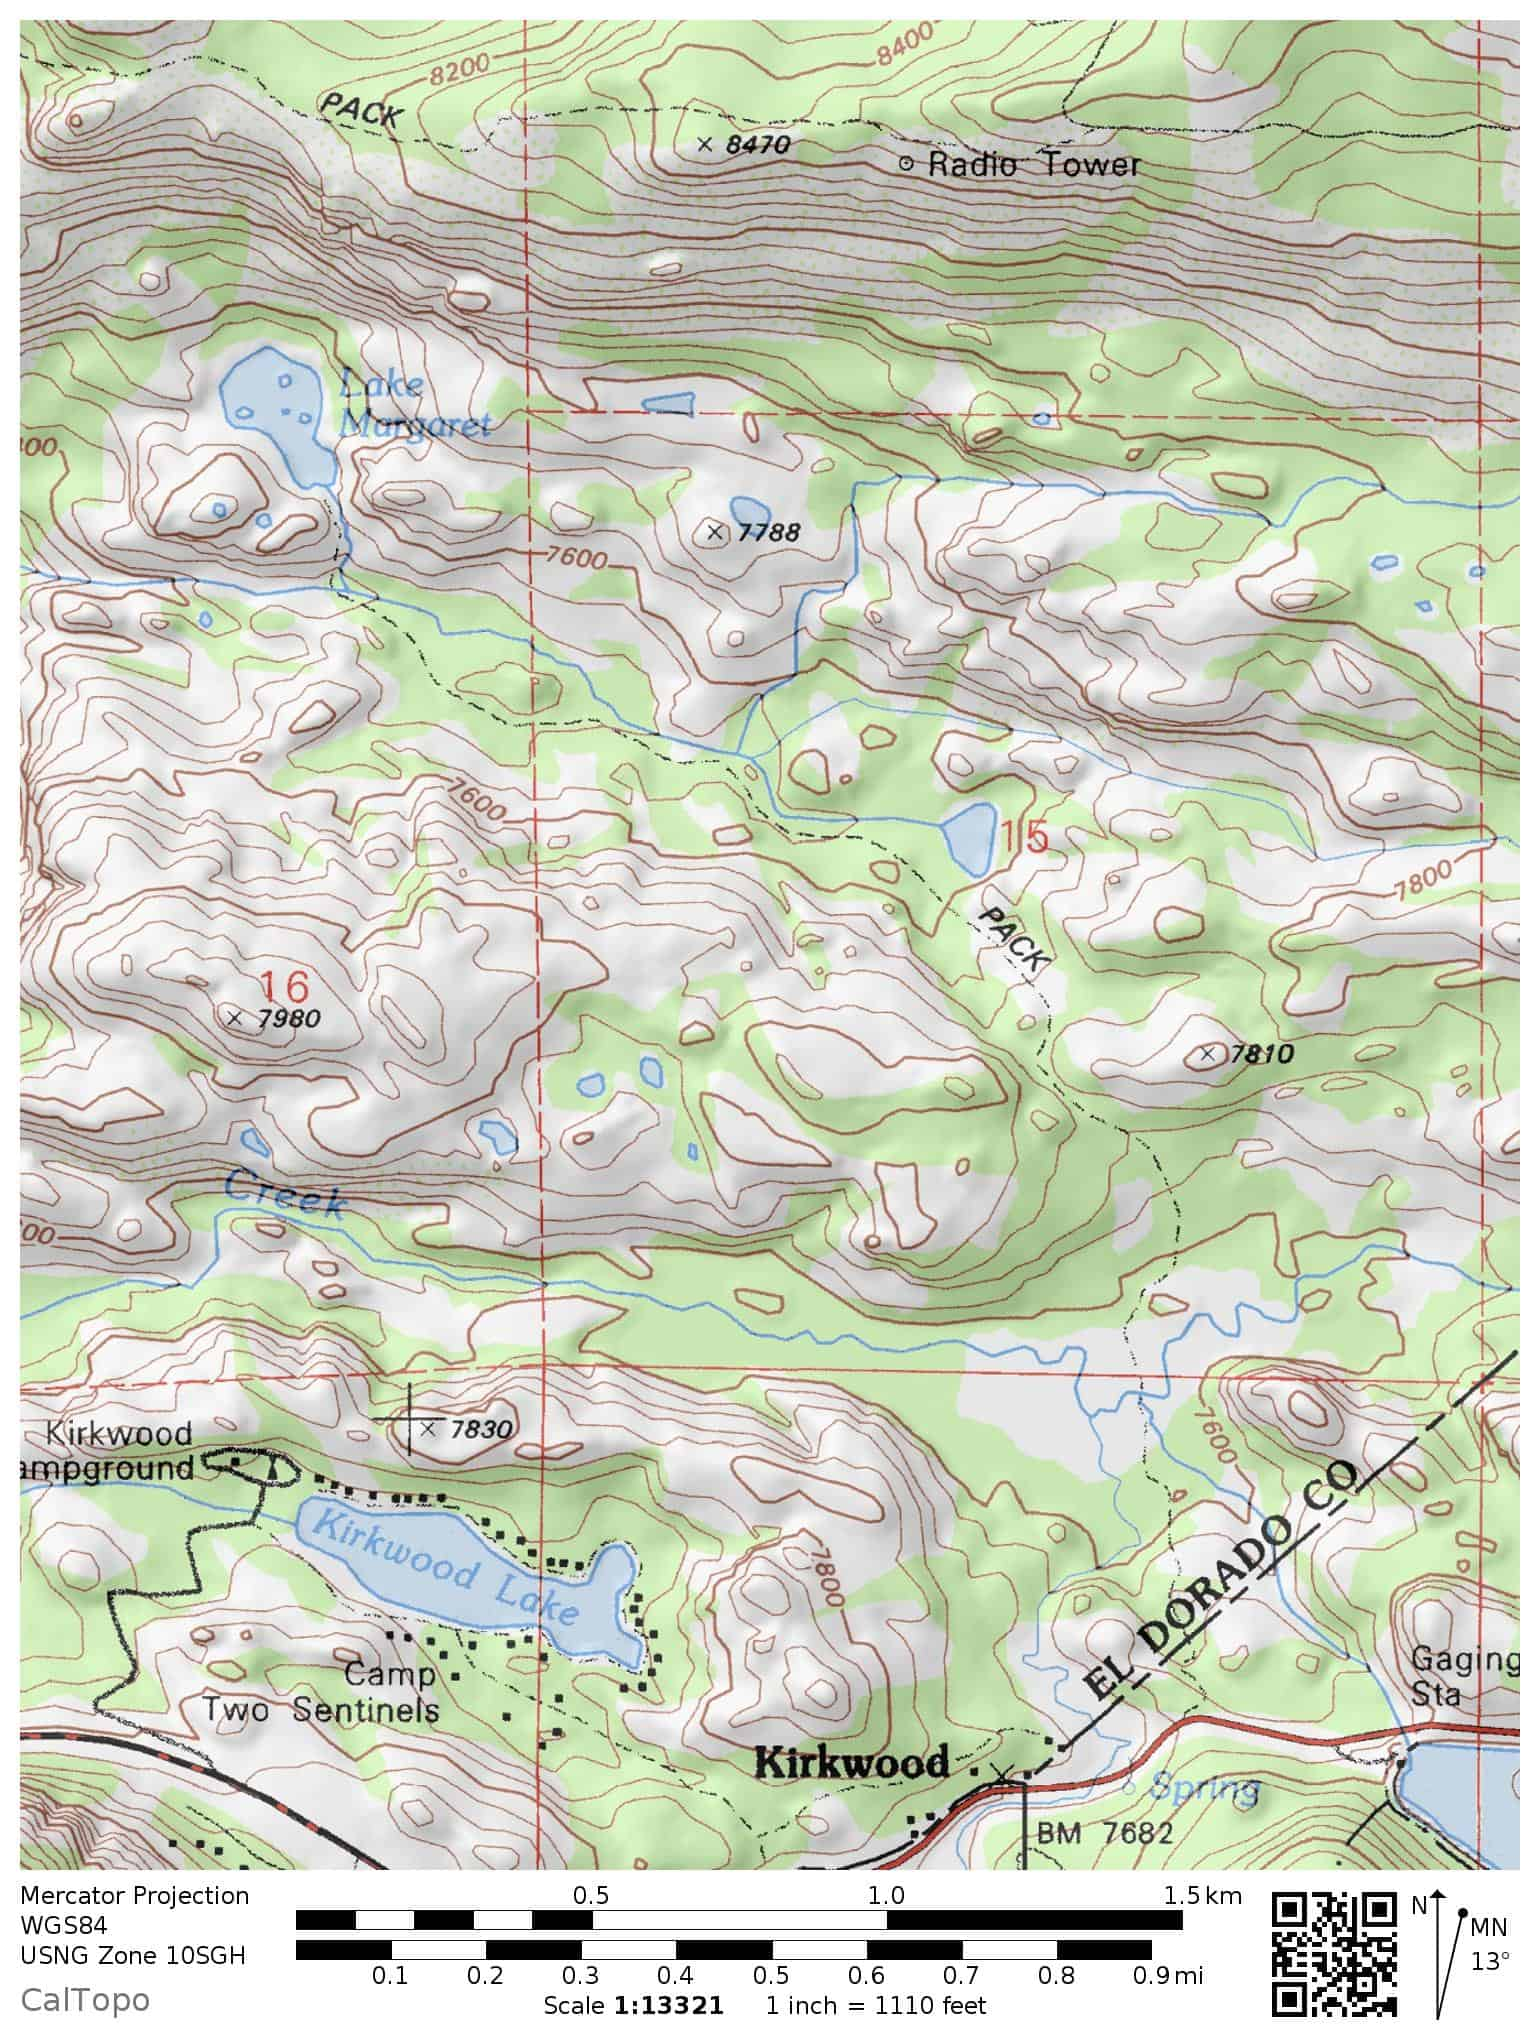 Topographic map of the Lake Margaret Trail in the Amador Ranger District, Eldorado National Forest, near Caples Lake and Highway 88.